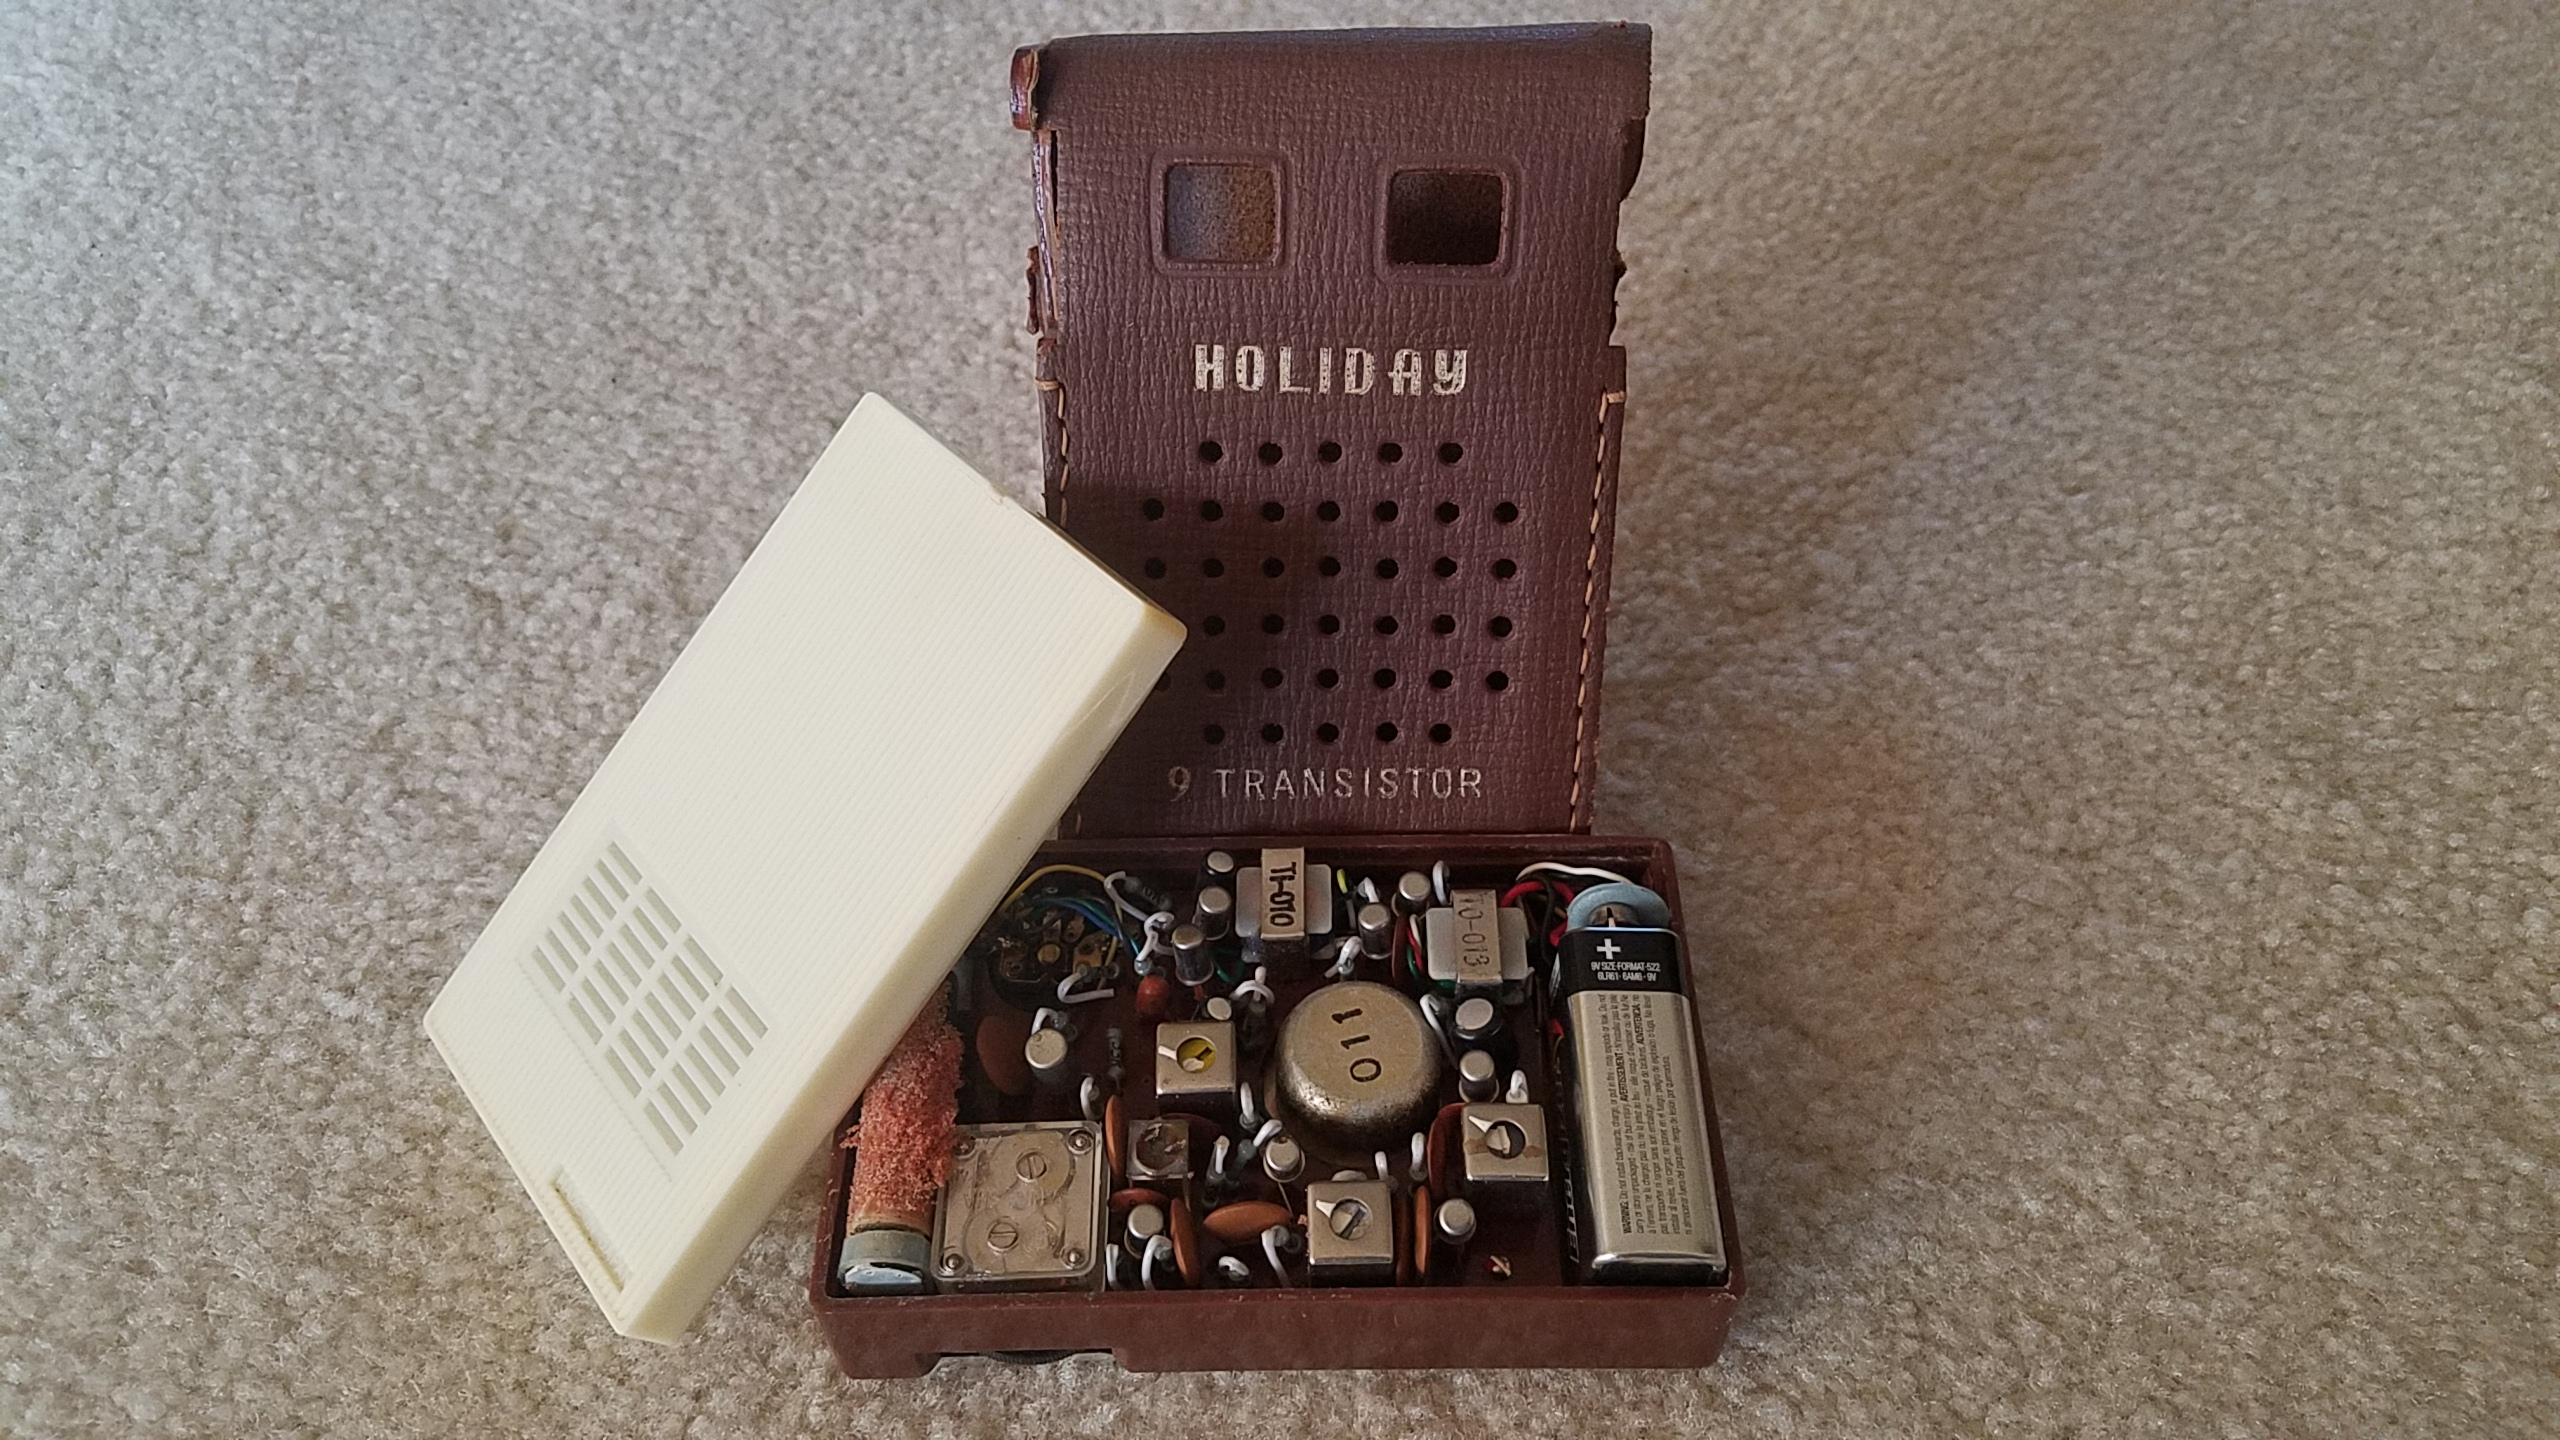 Picture of the 9 transistor Holiday radio